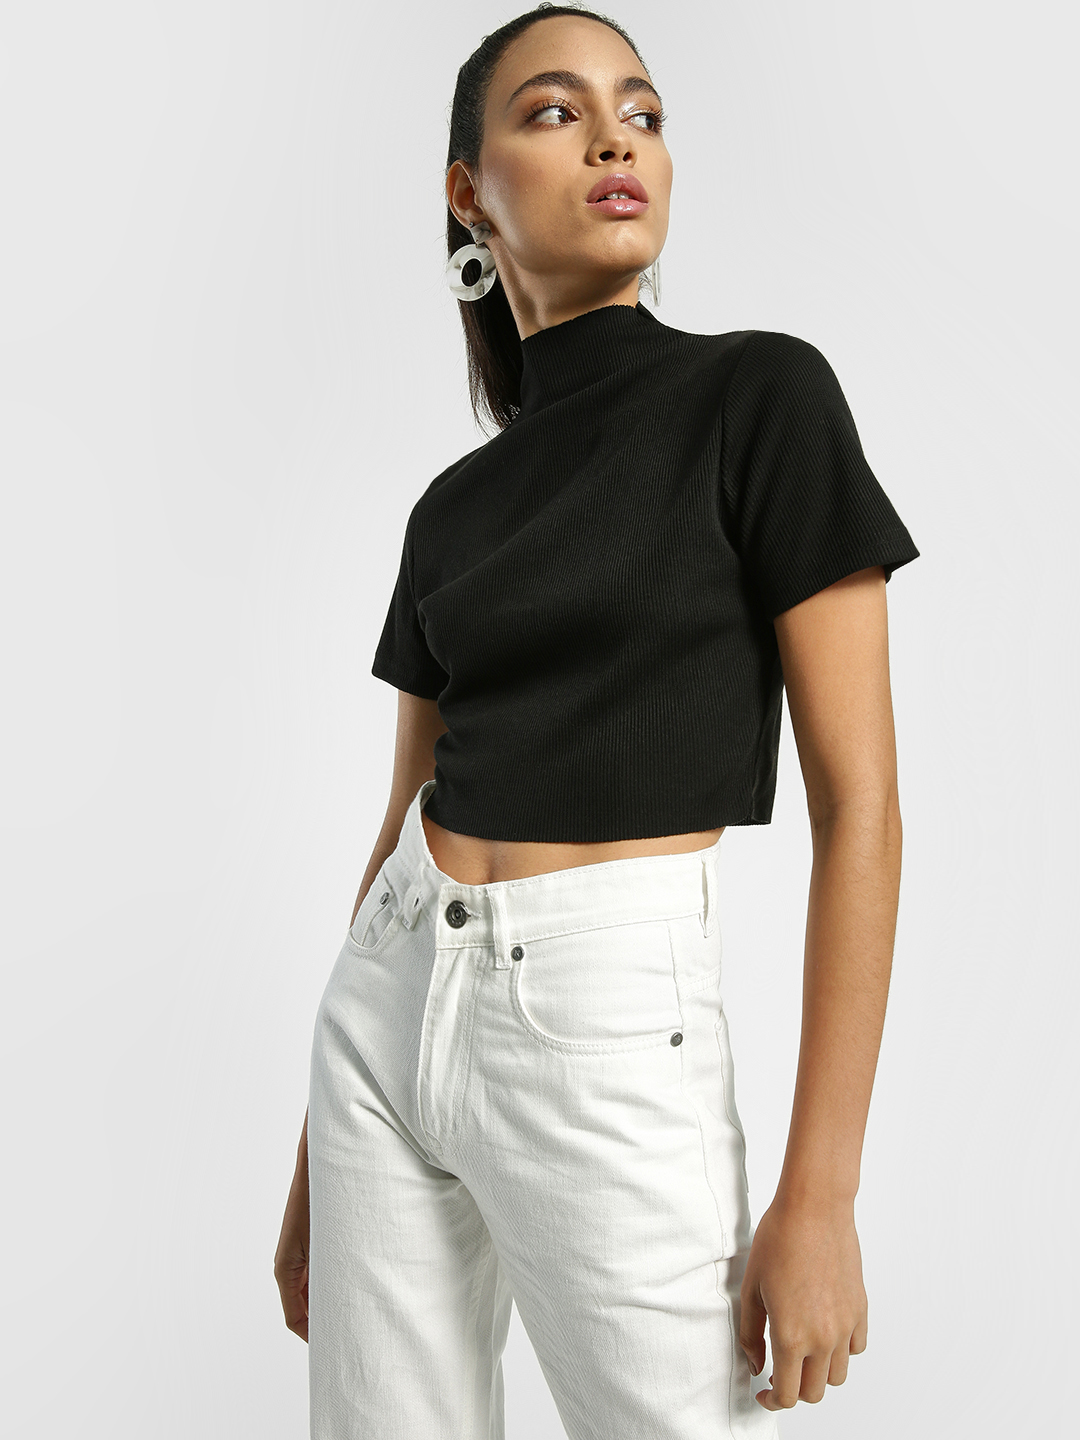 EmmaCloth Black Ribbed Turtle Neck Crop Top 1